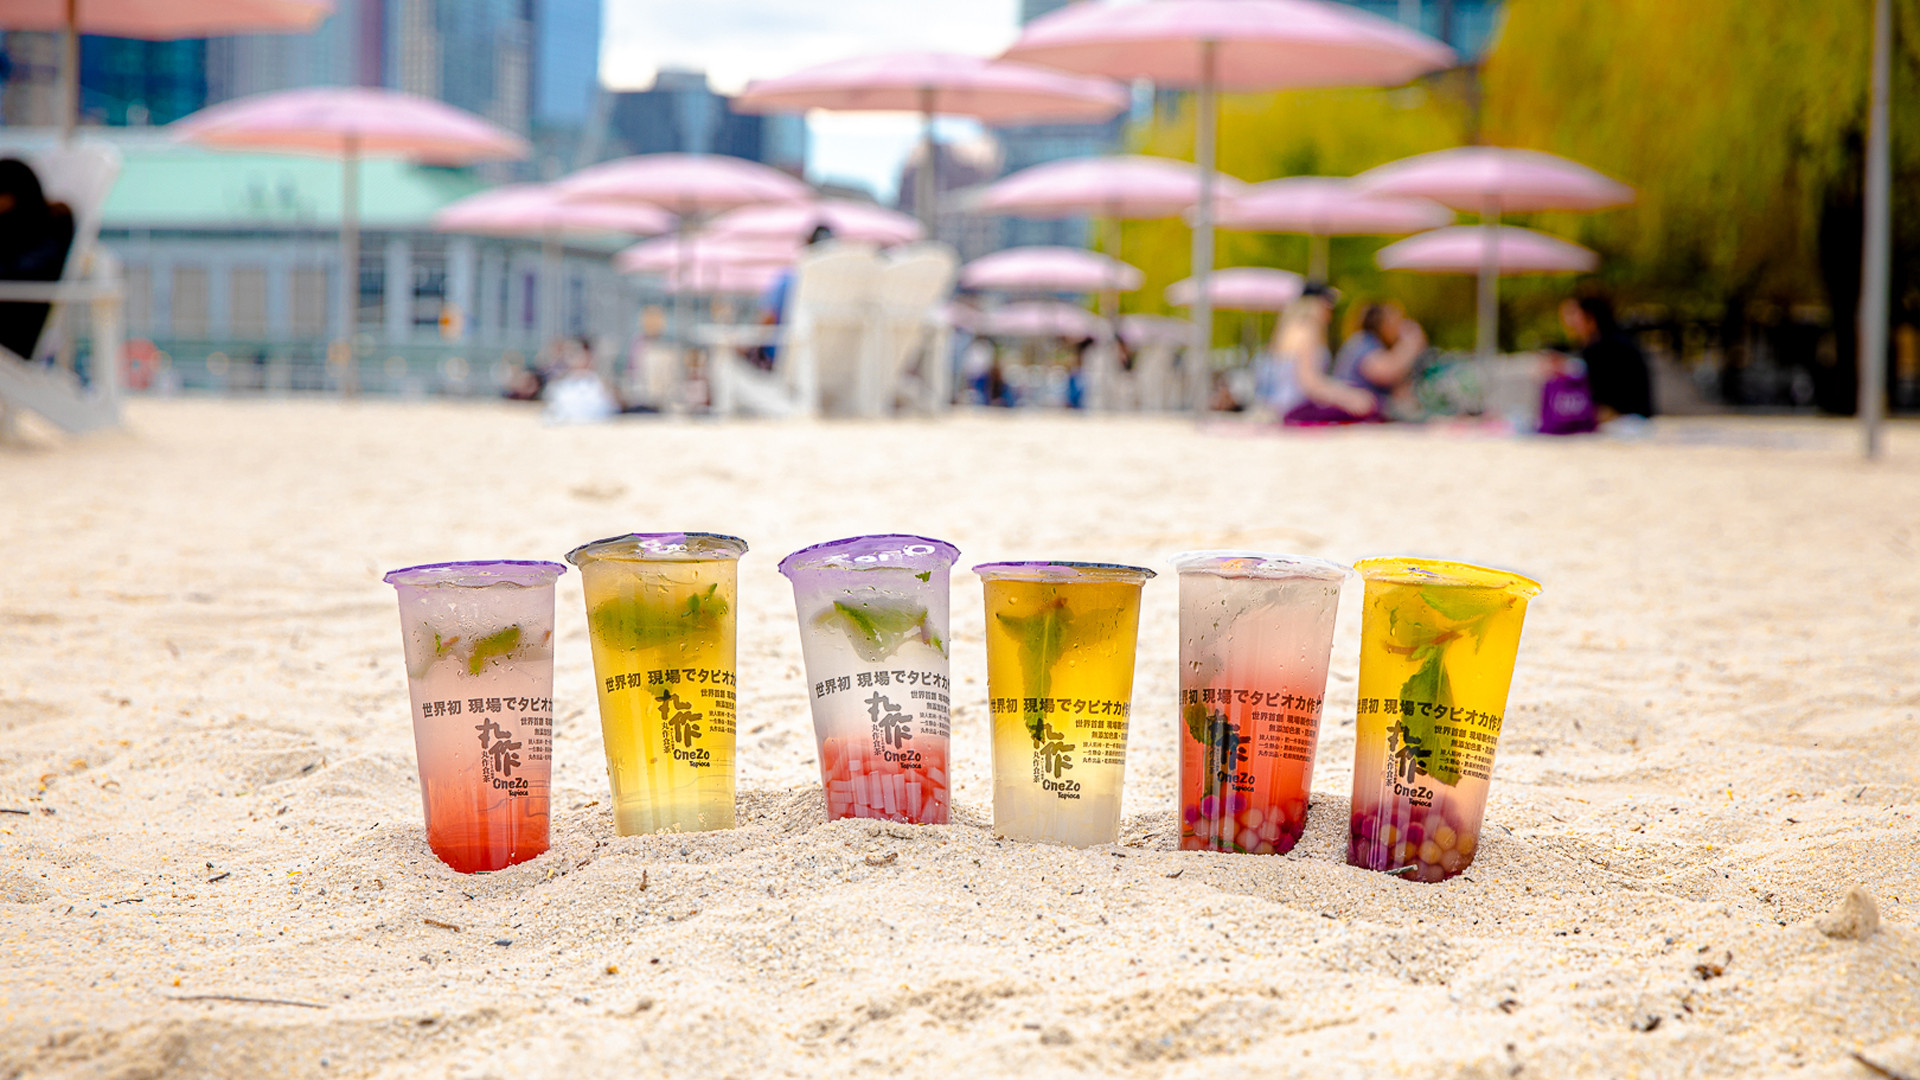 The best bubble tea in Toronto | OneZo Tapioca drinks on the sand at Sugar Beach